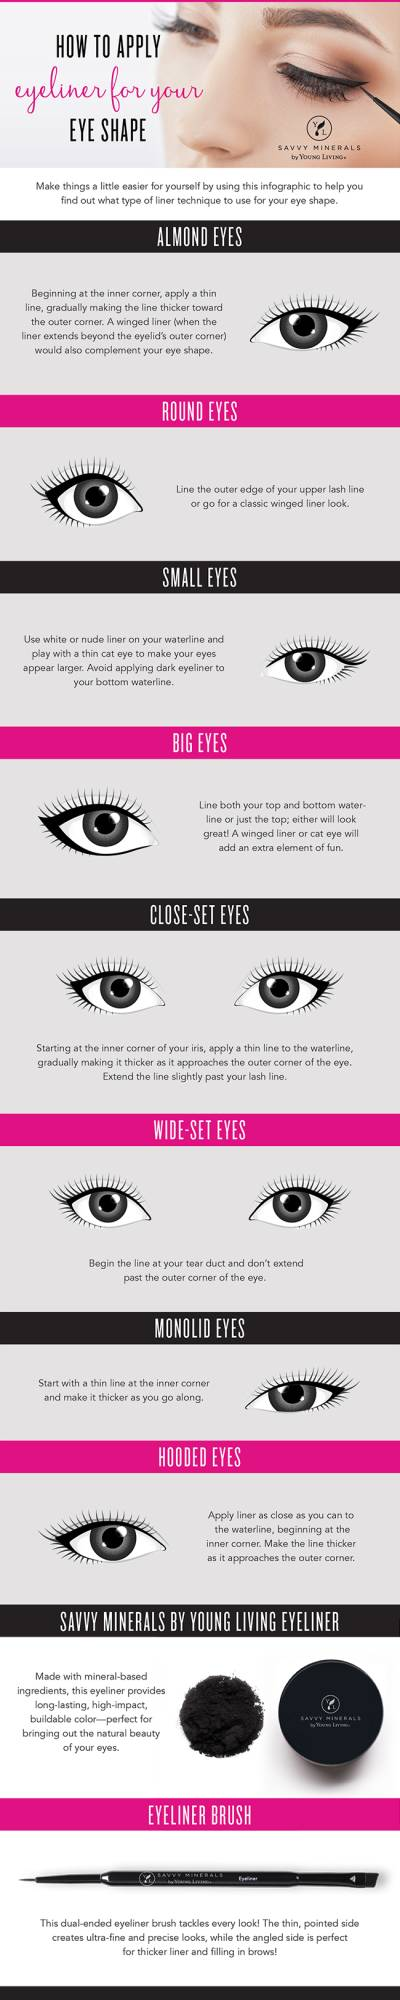 How to apply eyeliner for your eye shape Young Living